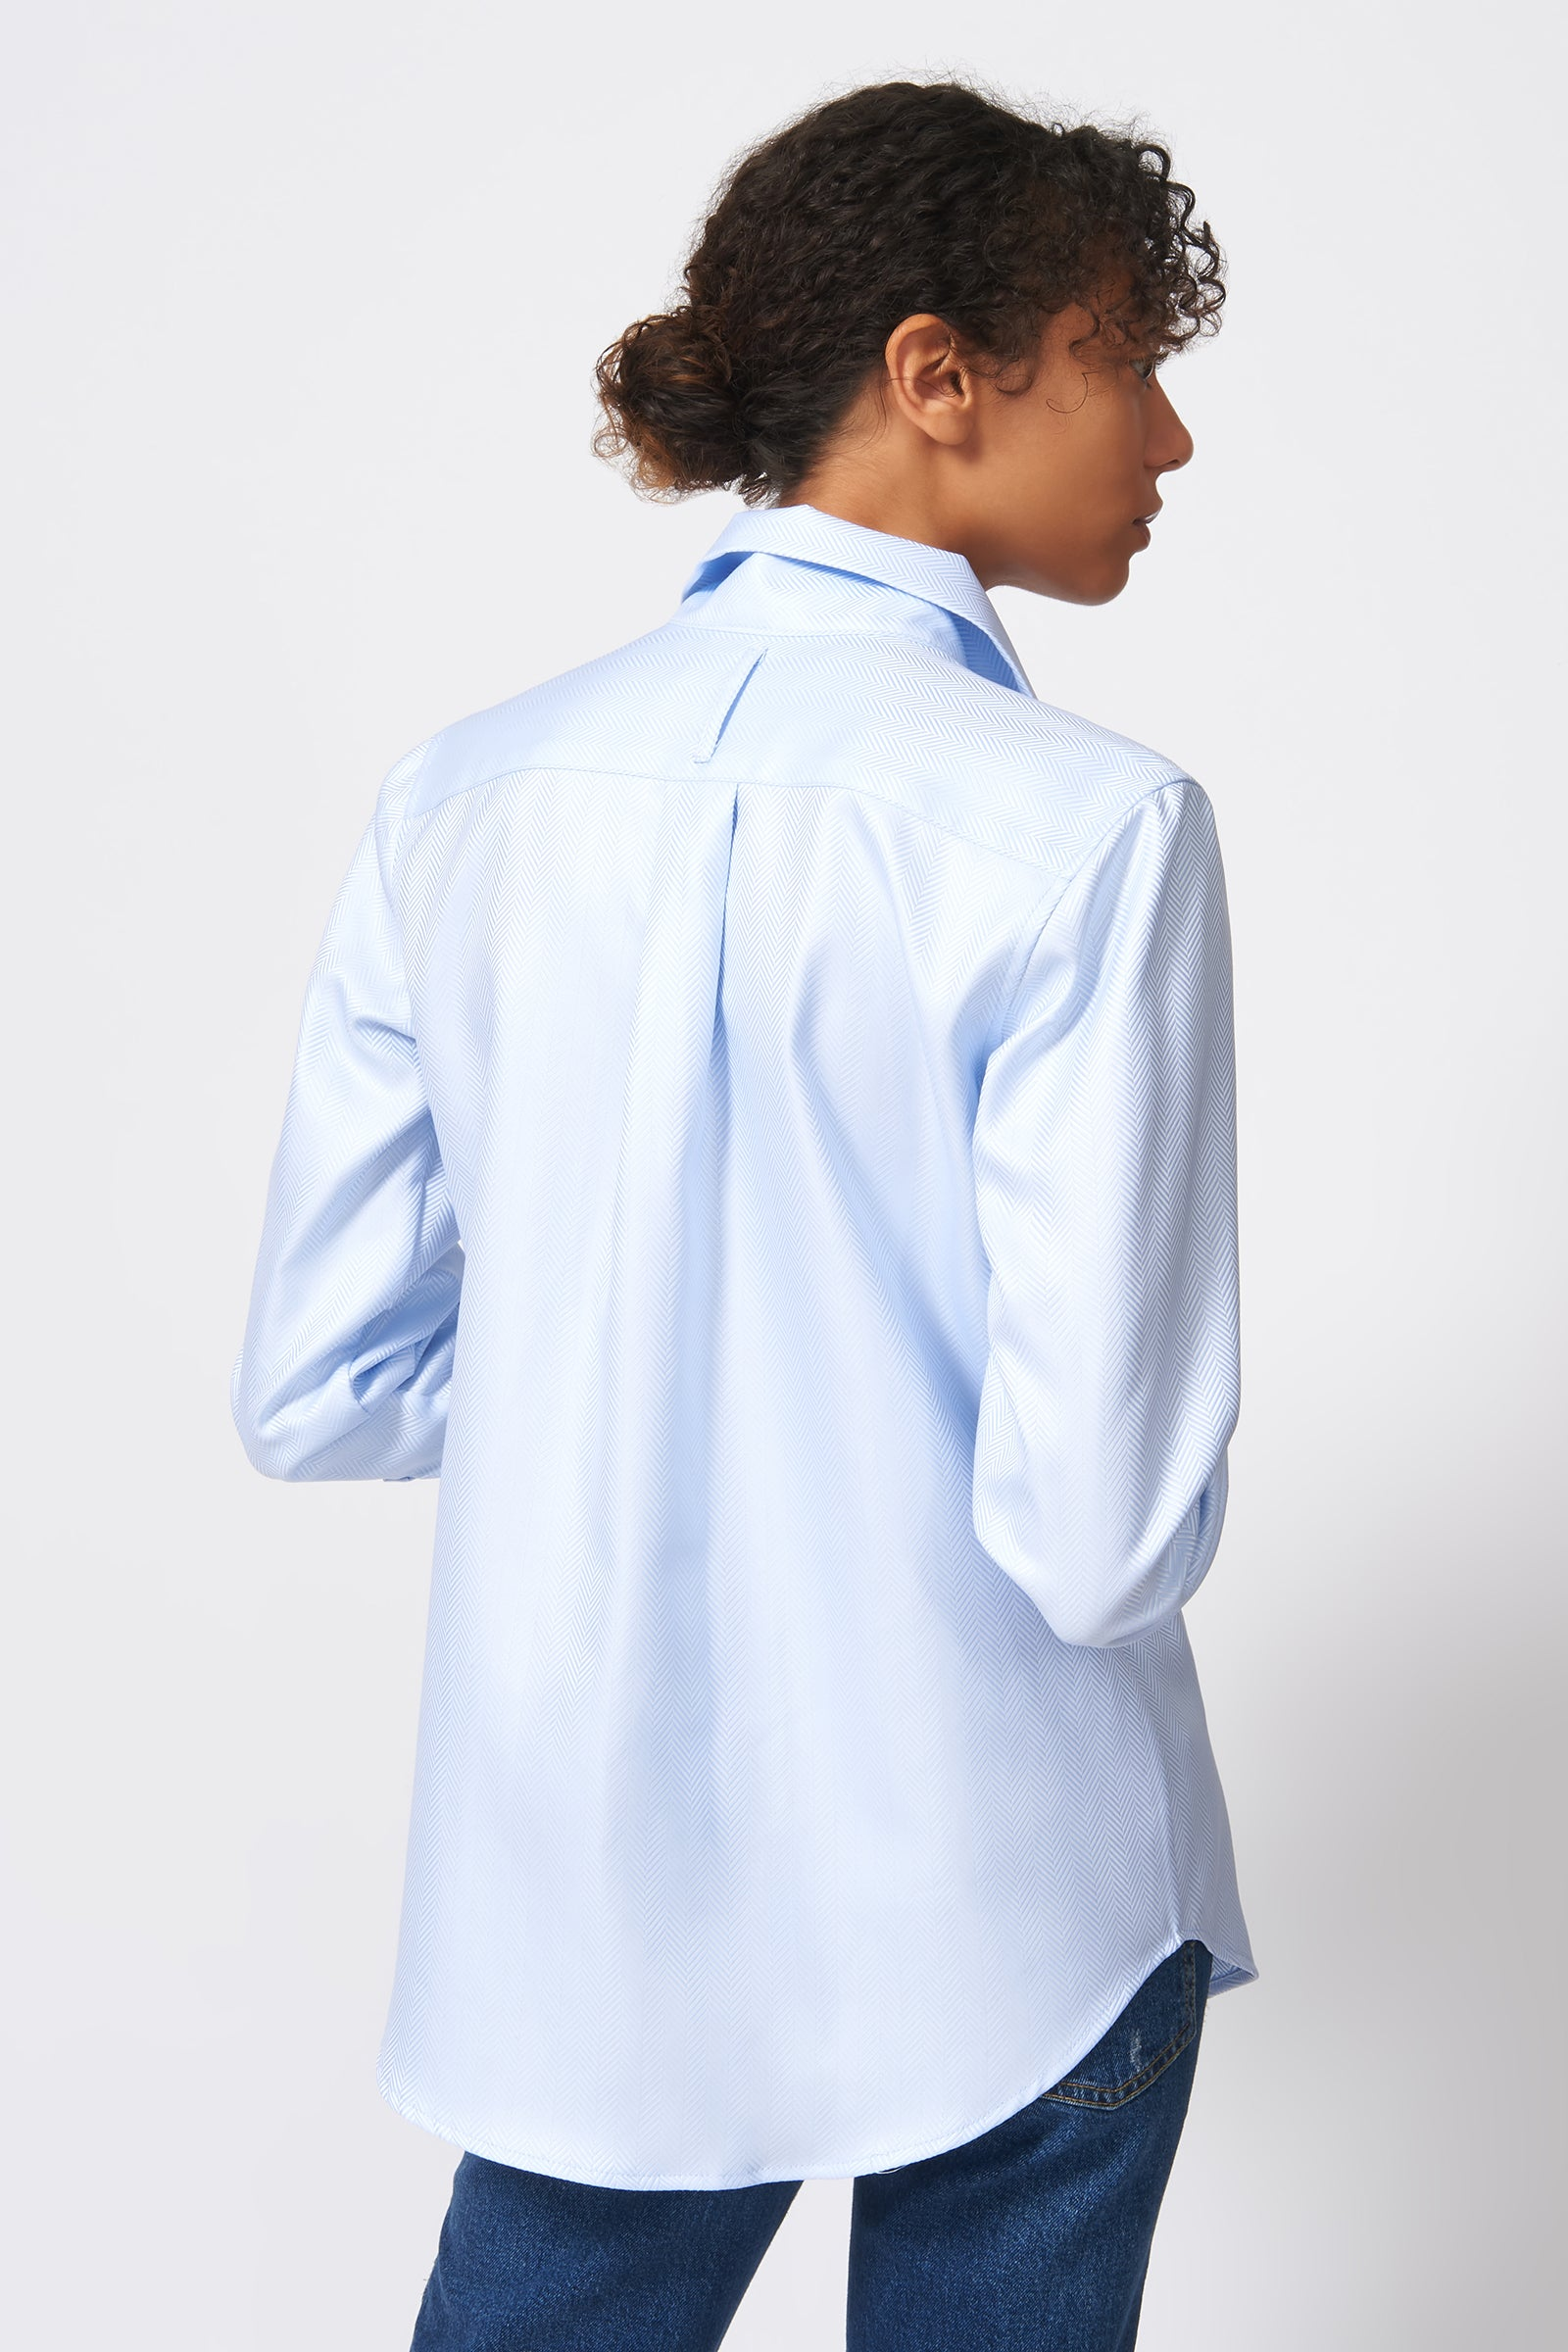 Kal Rieman Ginna Box Pleat Shirt in French Blue Herringbone on Model Back View